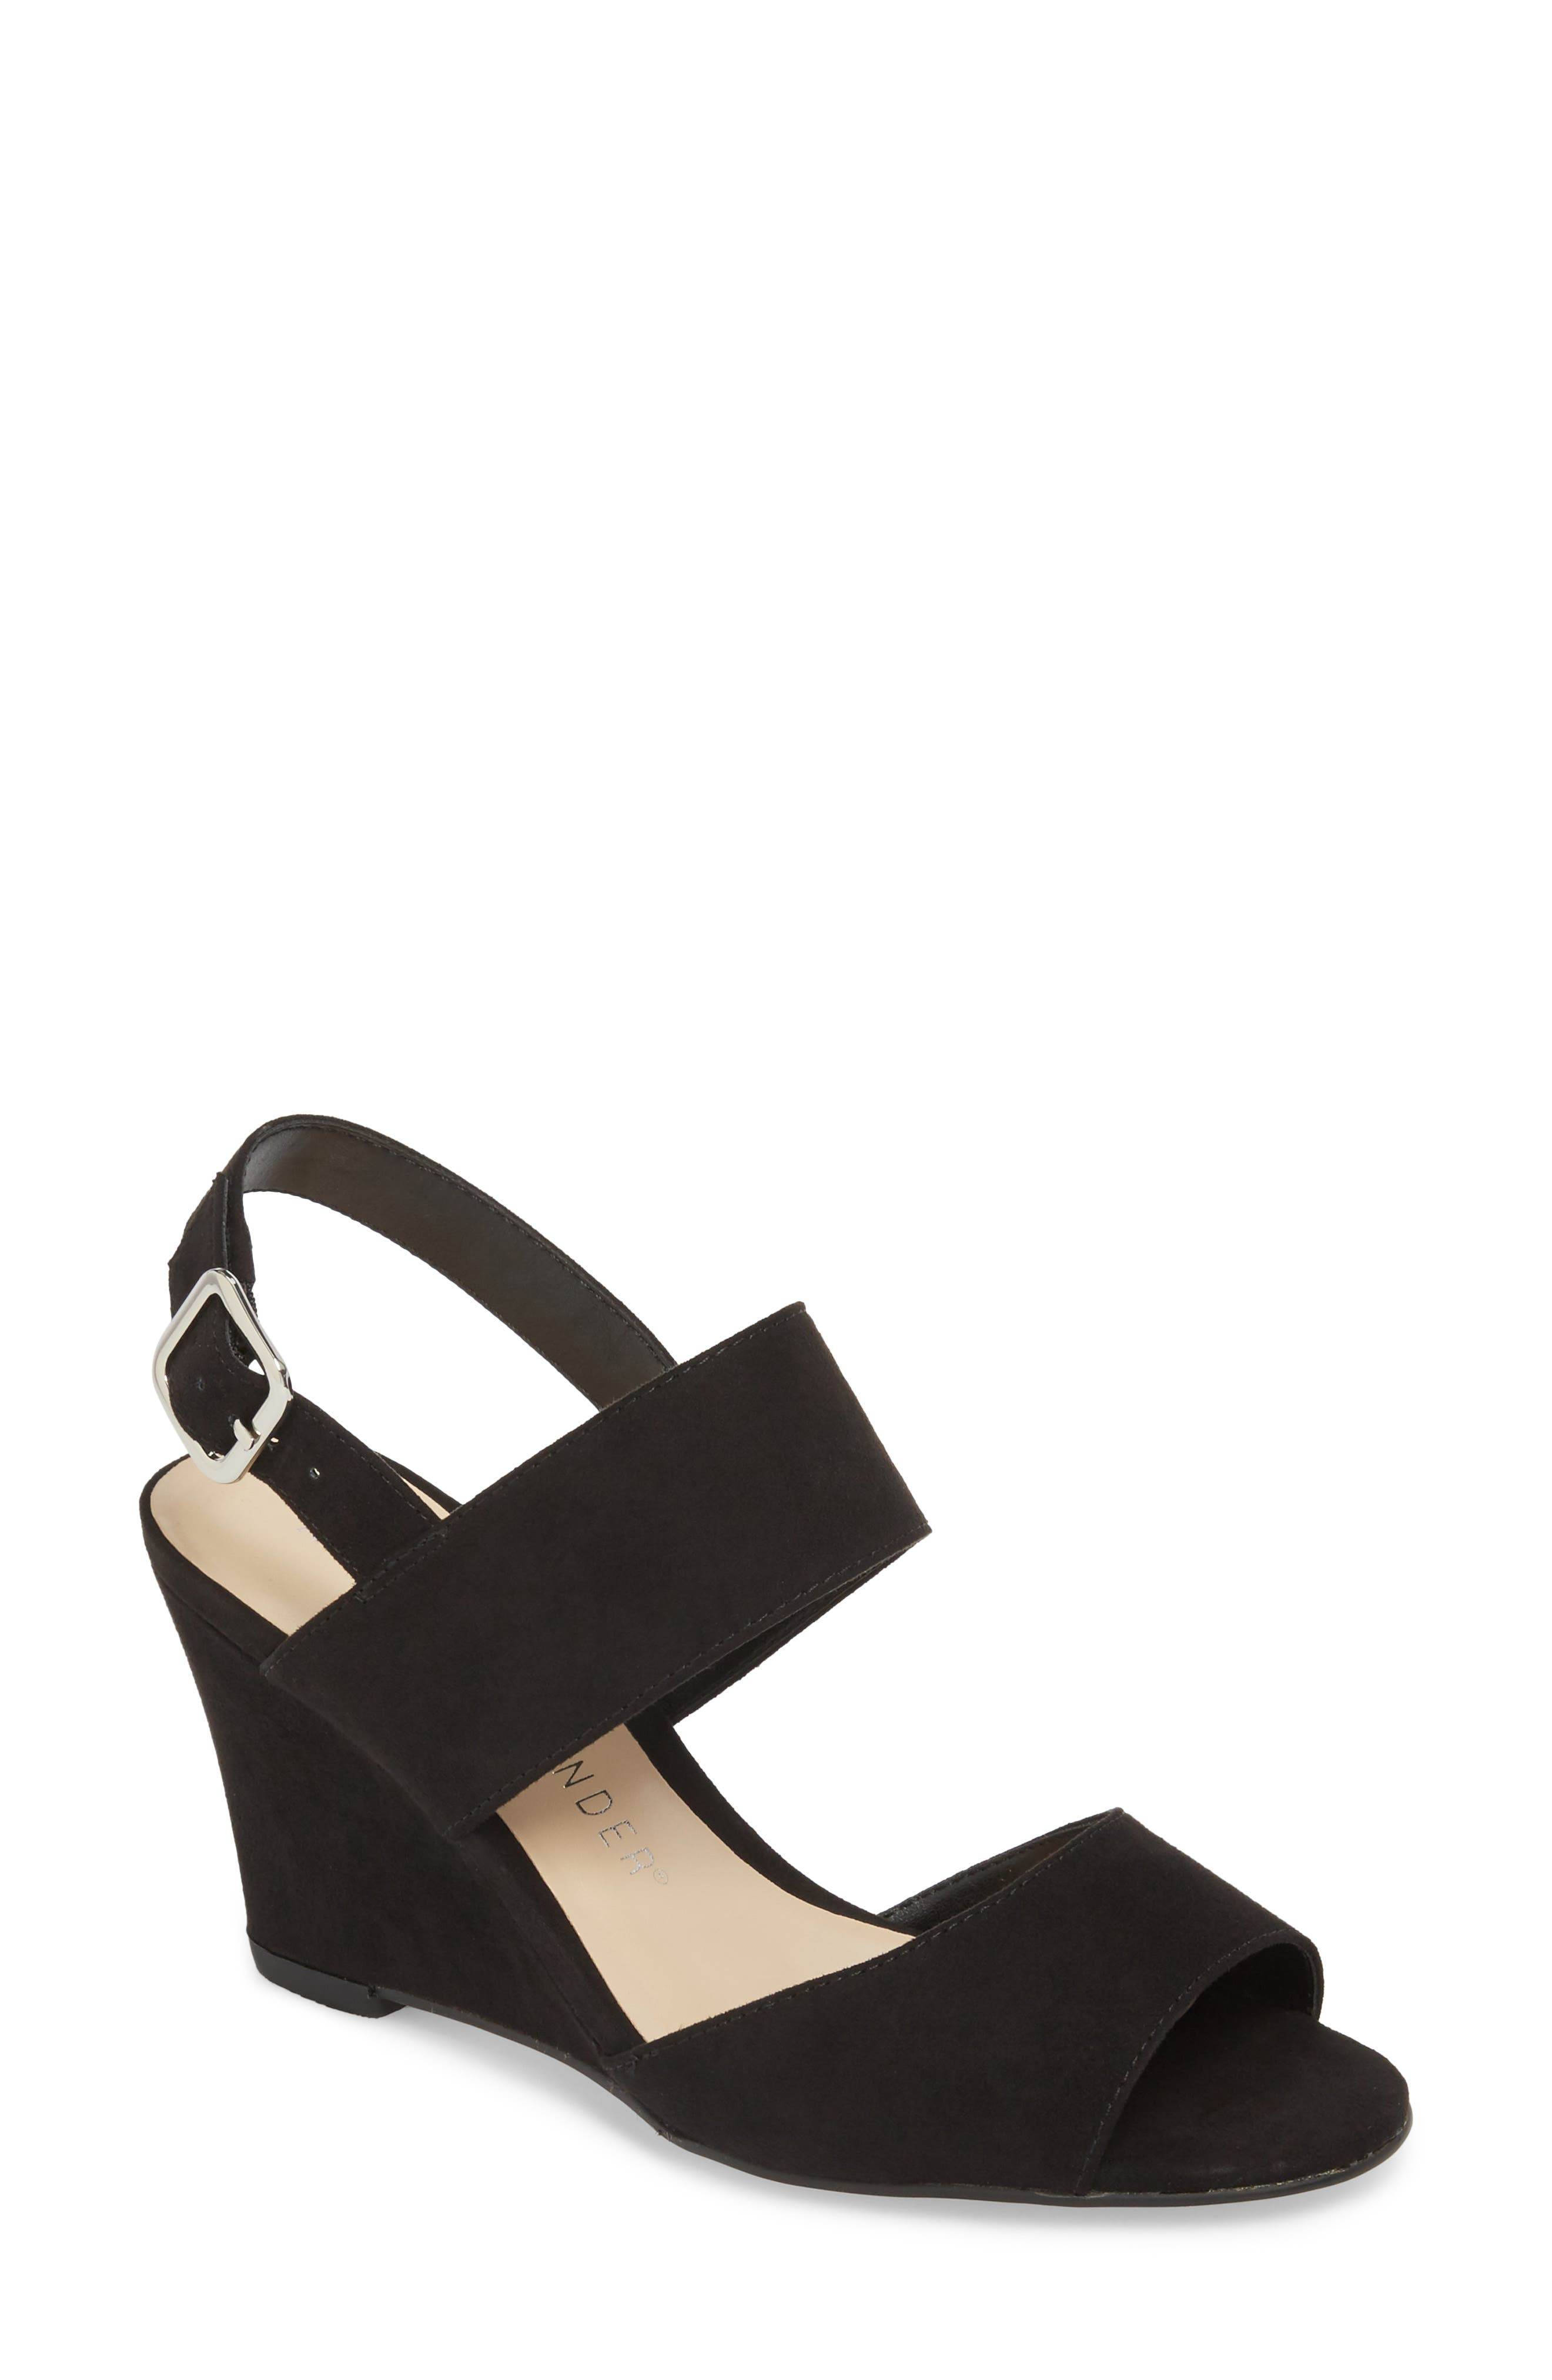 Slayte Wedge Sandal,                             Main thumbnail 1, color,                             BLACK FAUX SUEDE